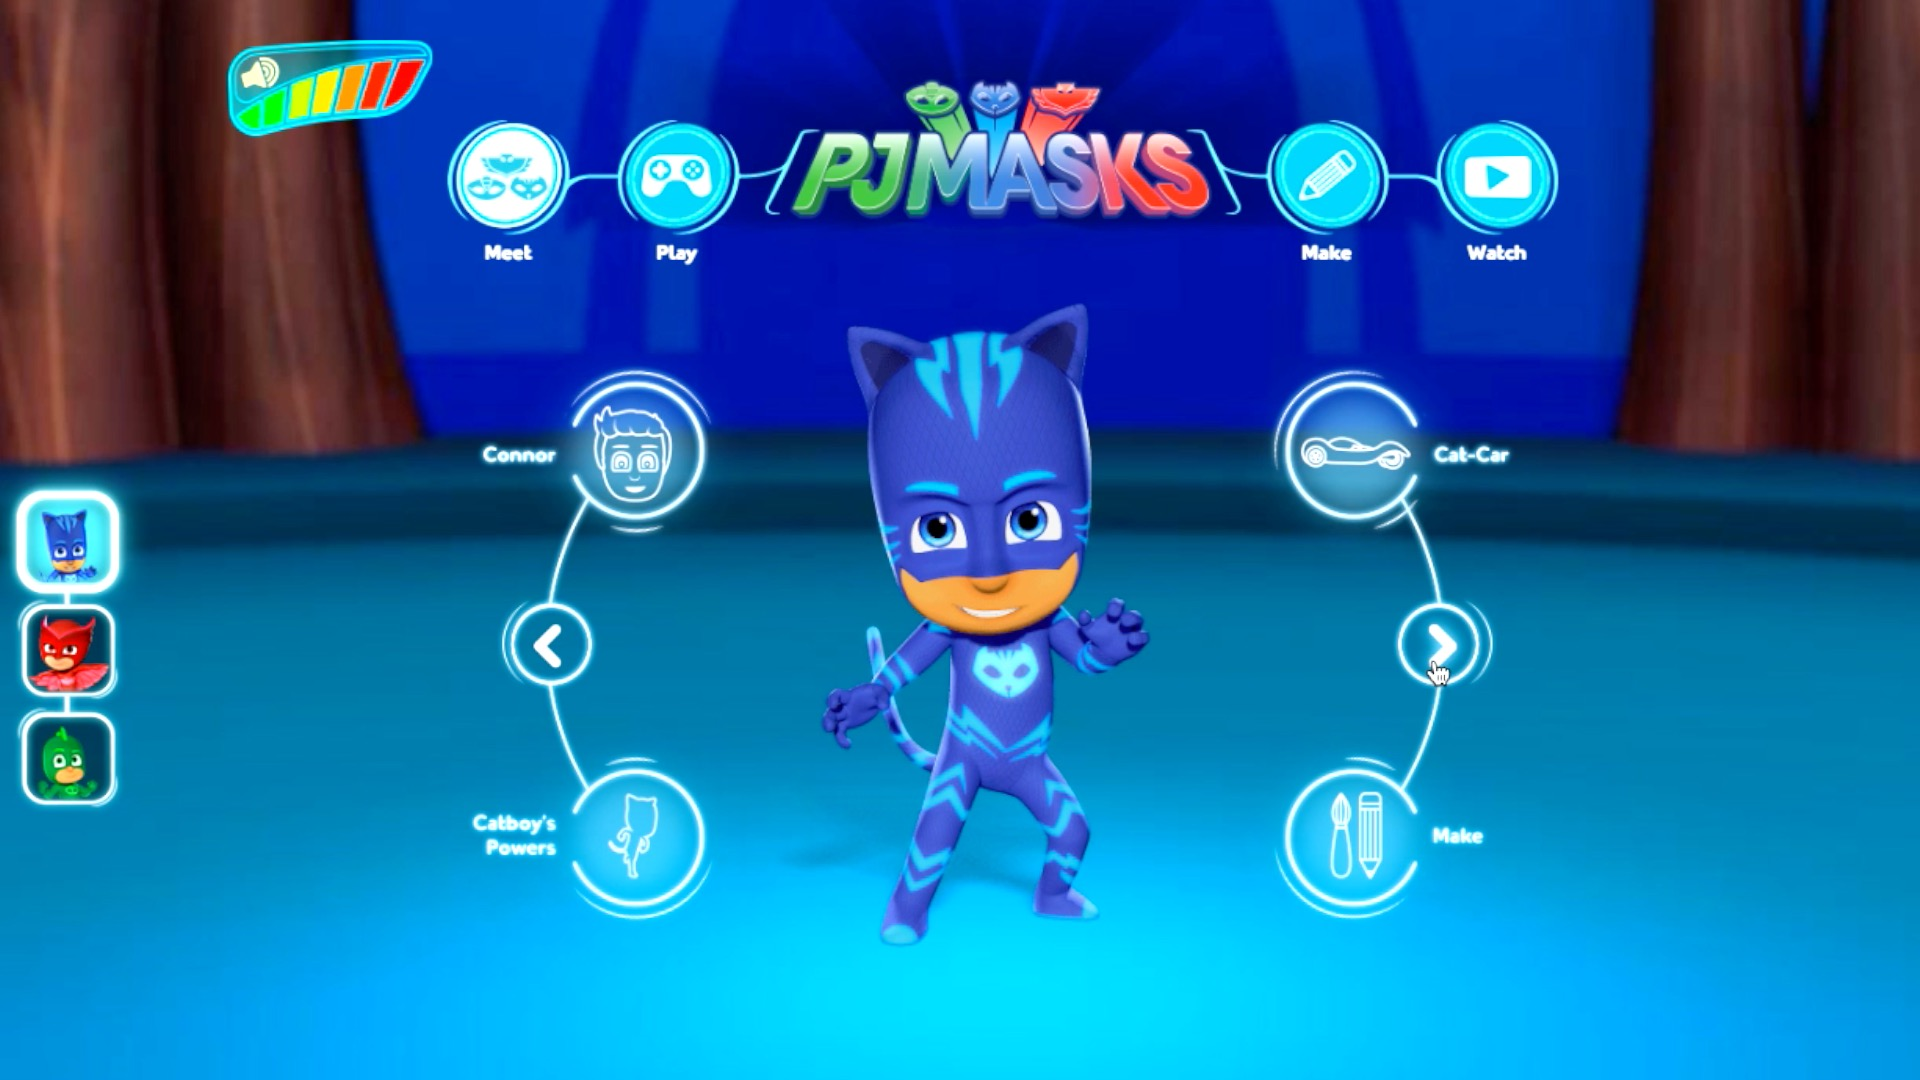 PJ Masks website brings games, craft and 3D characters